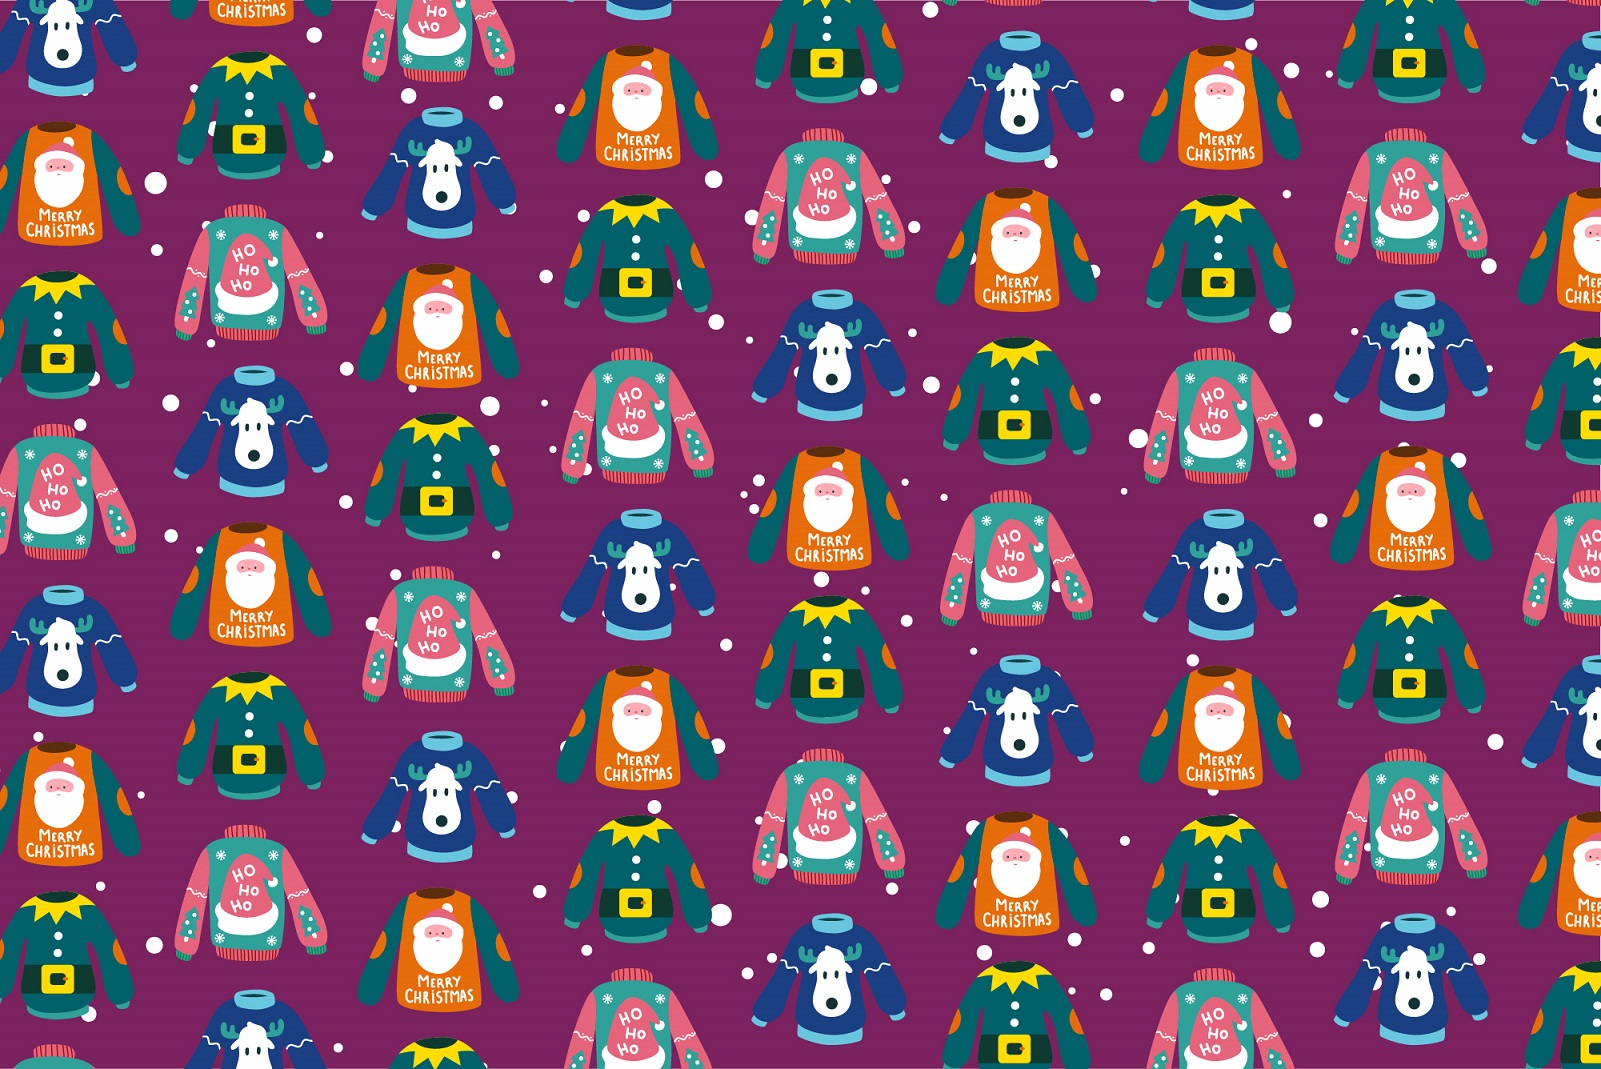 Background graphic of Christmas jumpers